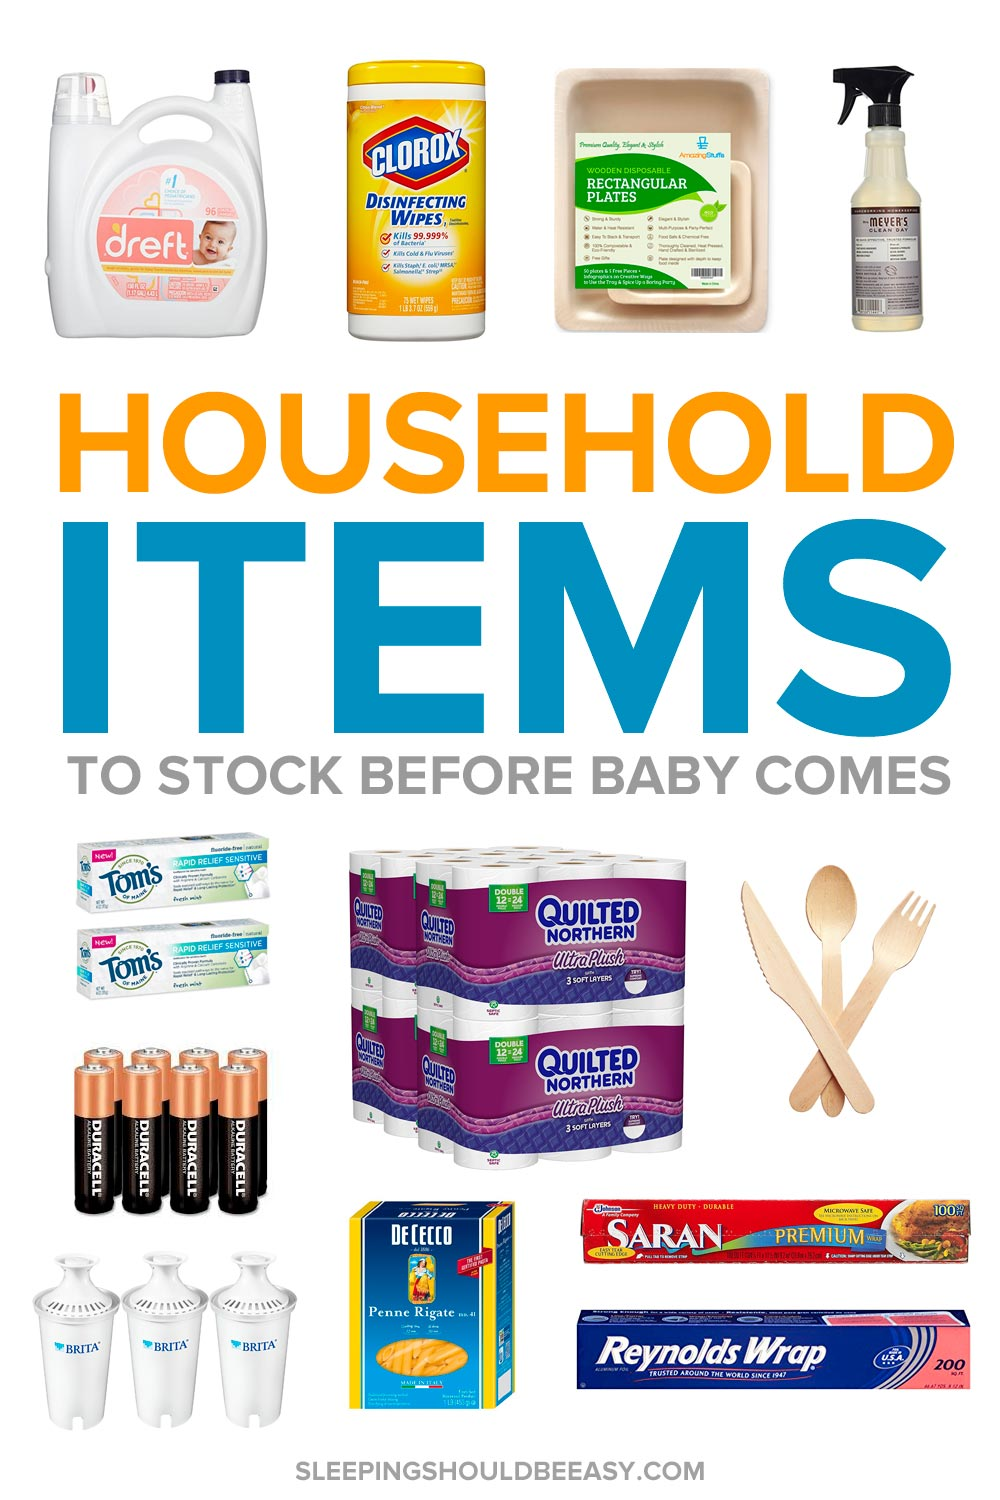 A collection of household items to stock before the baby comes